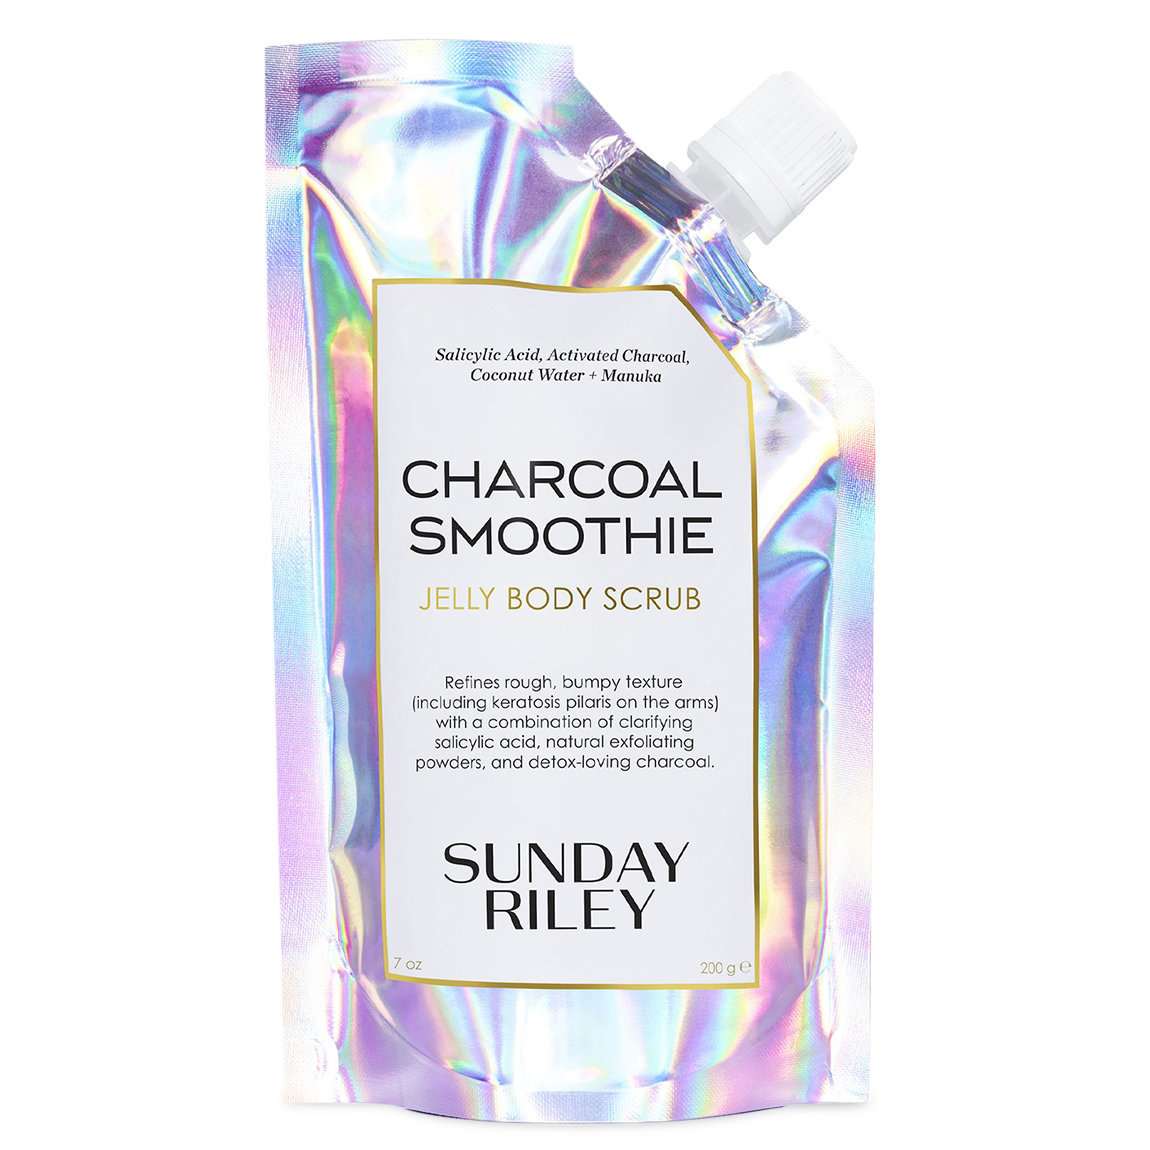 Sunday Riley Charcoal Smoothie Jelly Body Scrub product swatch.